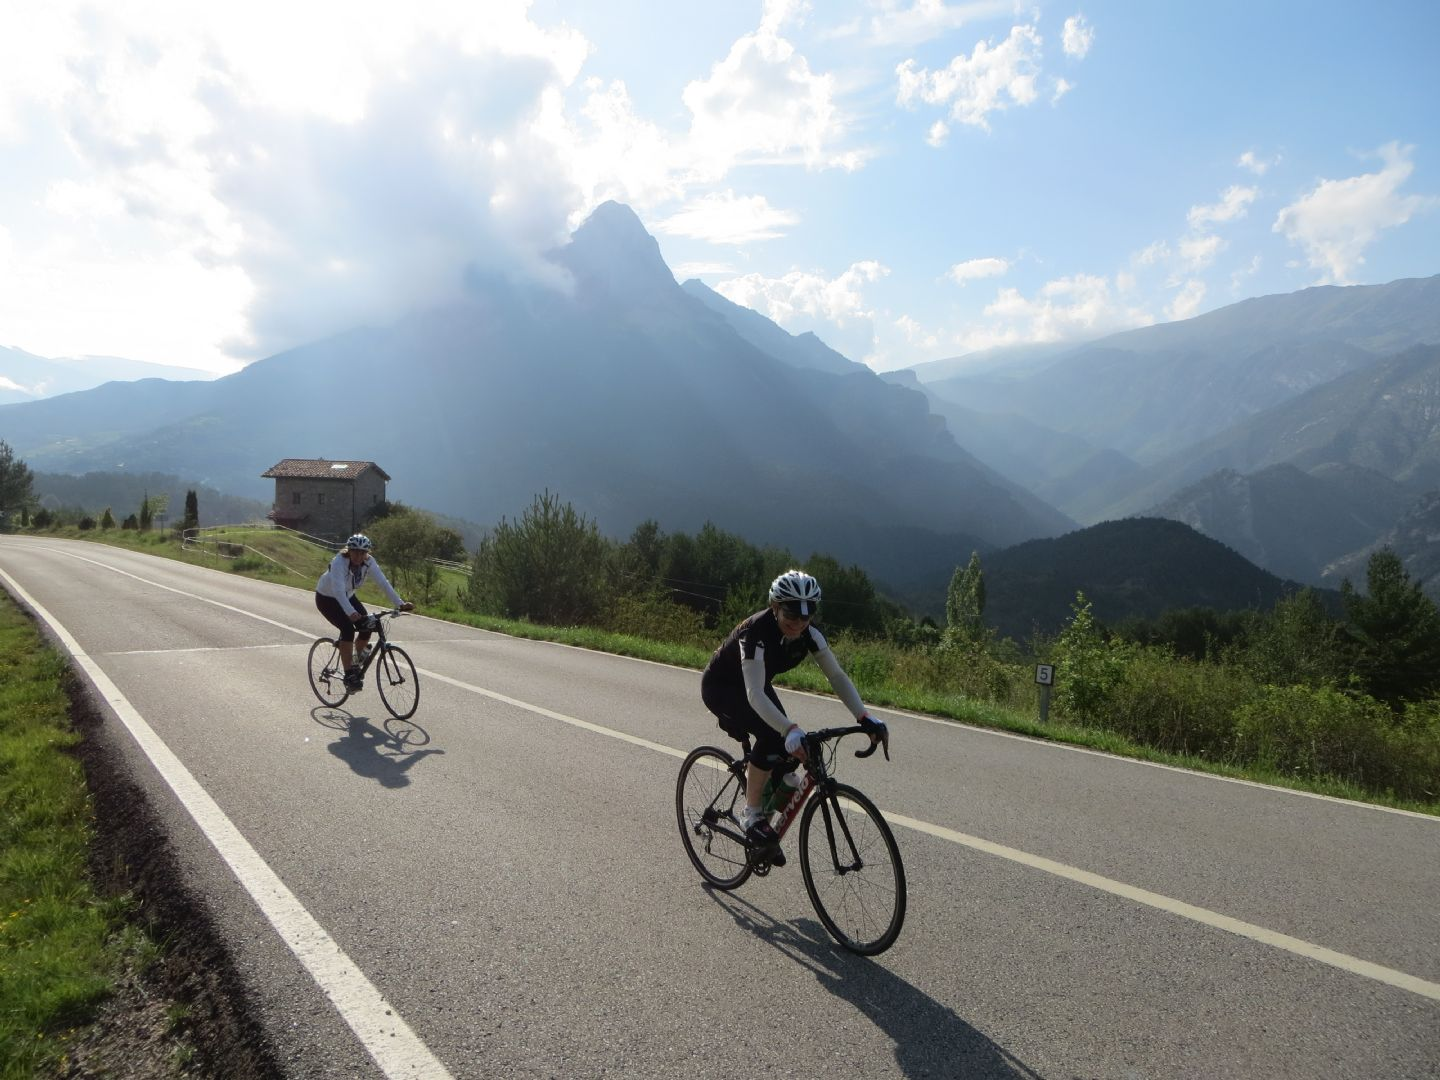 IMG_1017.JPG - Northern Spain - Spanish Pyrenees - Guided Road Cycling Holiday - Road Cycling